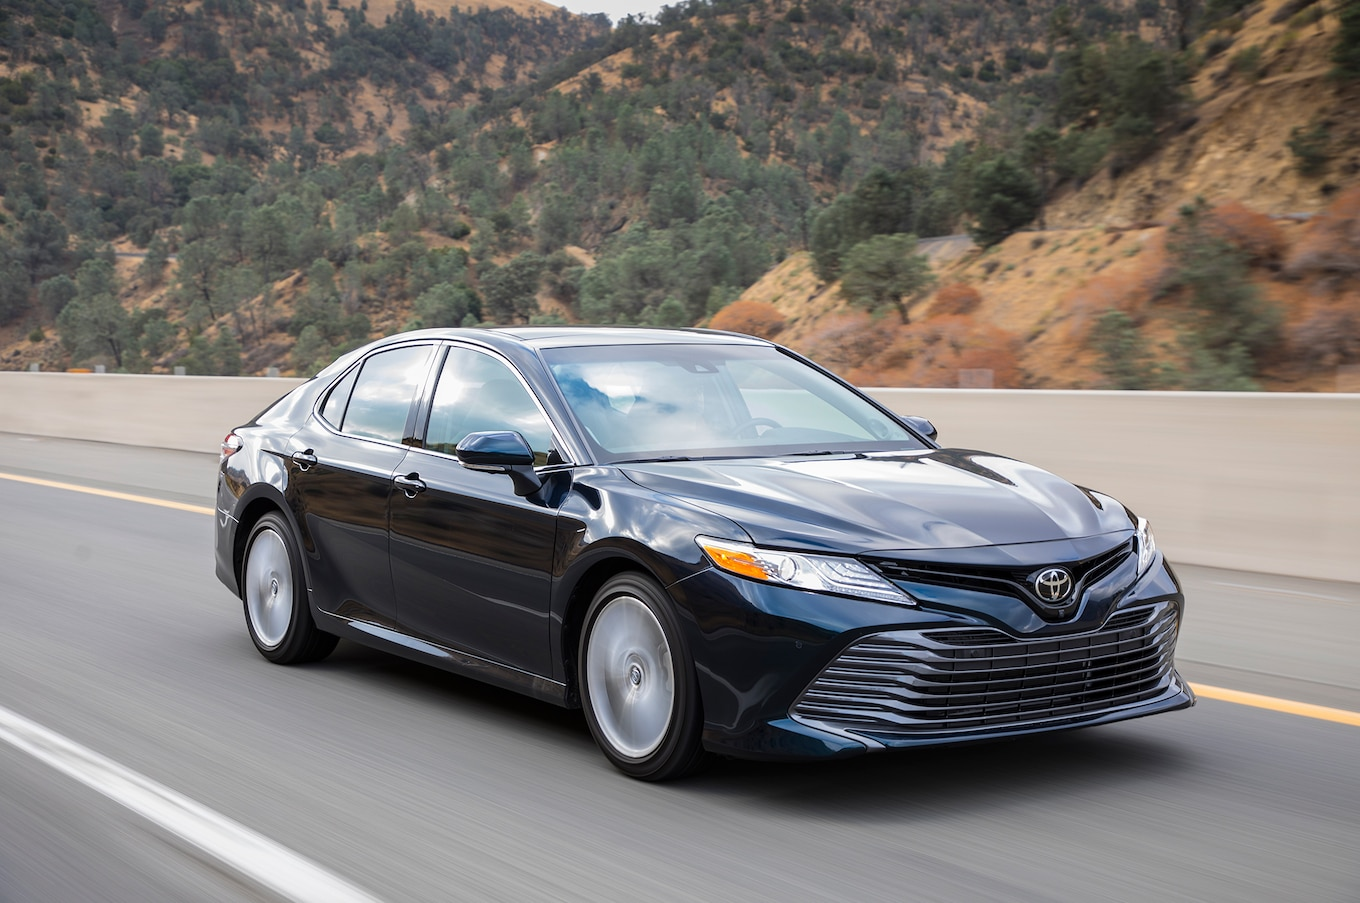 all new camry sport kelemahan grand veloz 2018 toyota first test review big improvement but is it for the we were anxious to get some of our own numbers see if king has pedigree worthy retaining crown